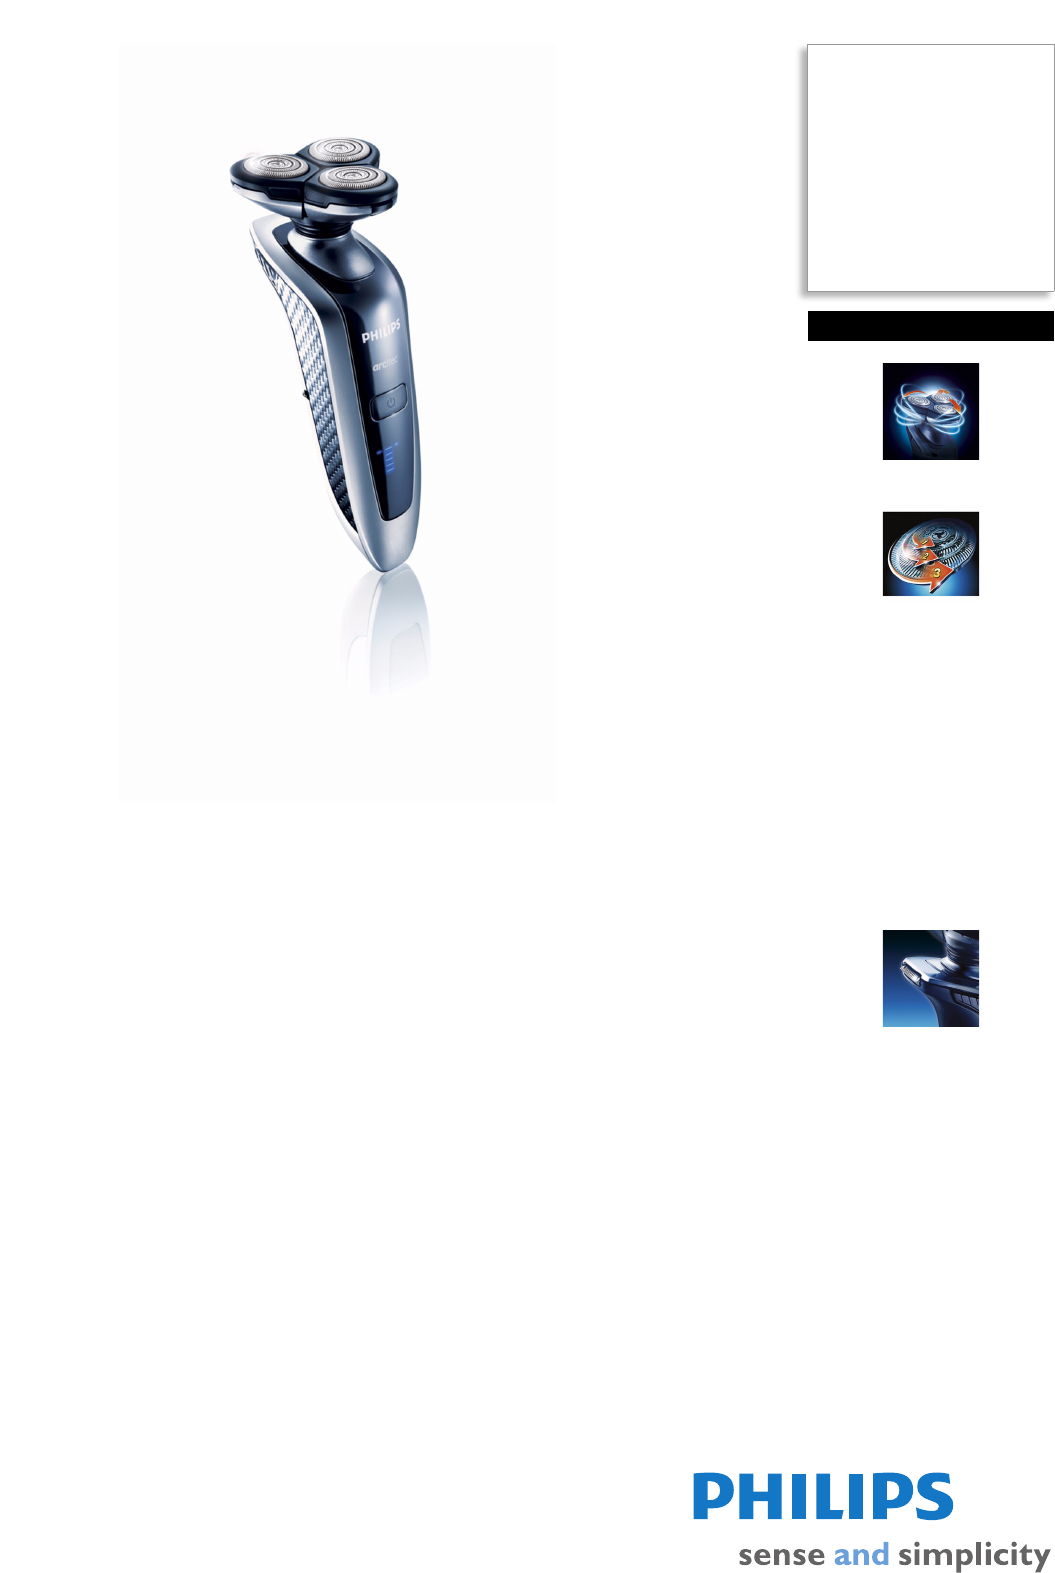 philips electric shaver rq1060 user guide manualsonline com rh personalcare manualsonline com Philips Instruction Manuals Philips Electronics Manuals